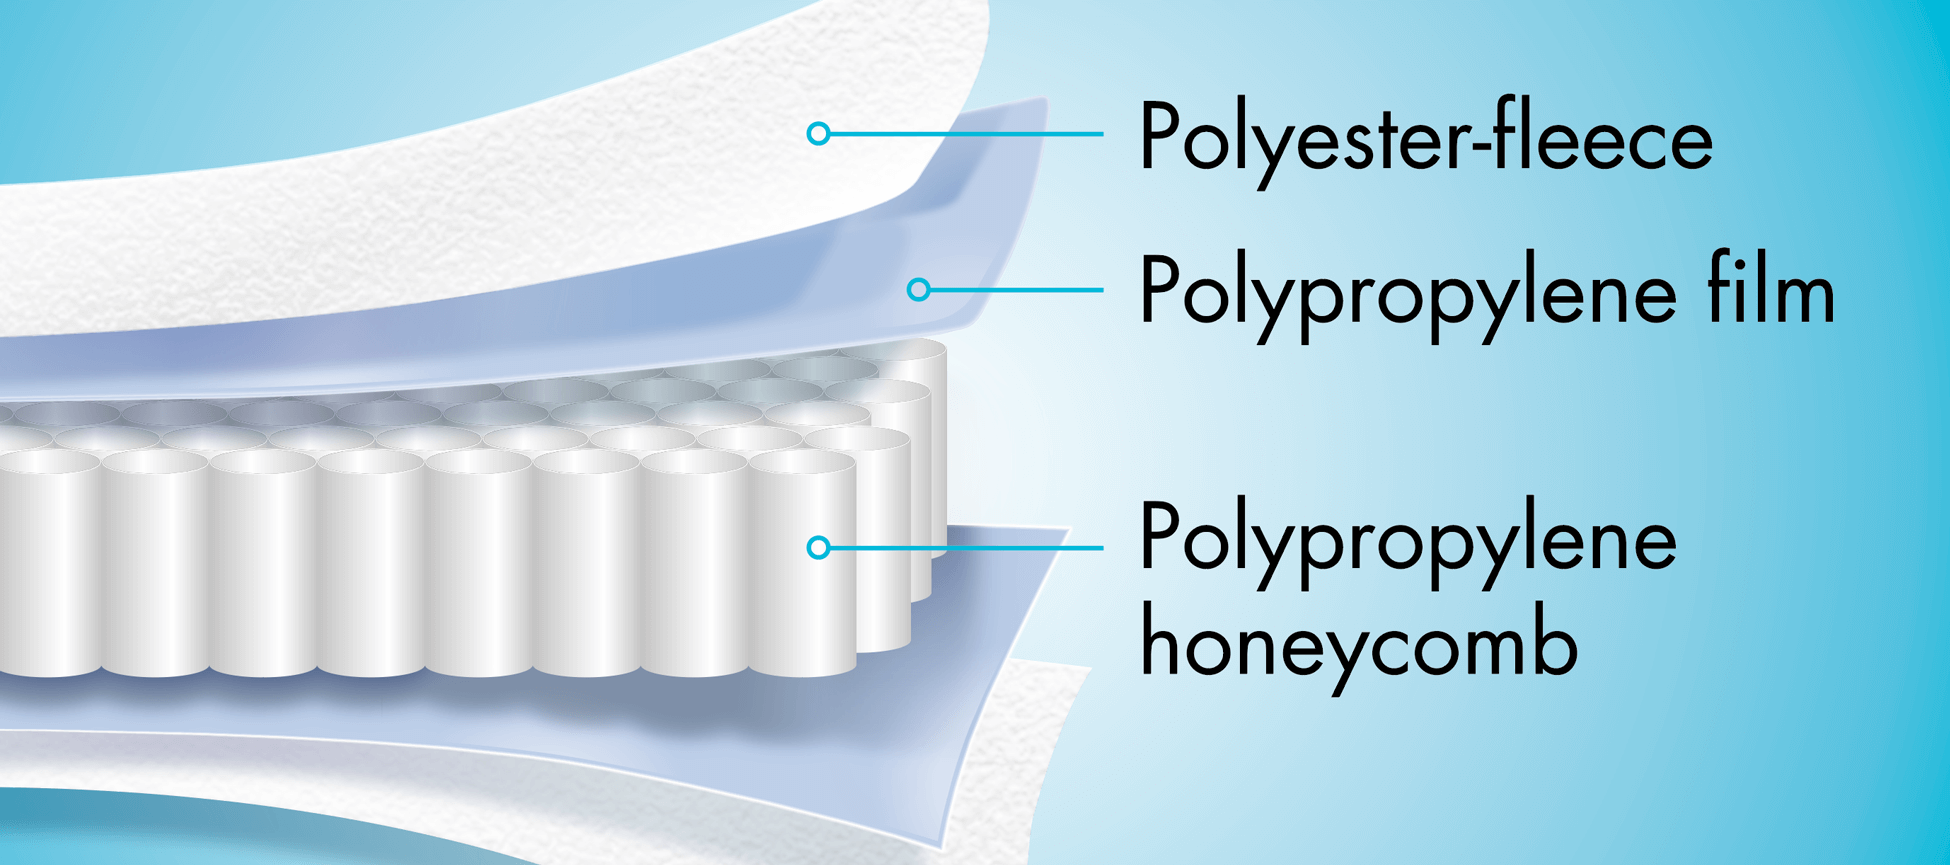 polypropylene-homeycomb-diagram